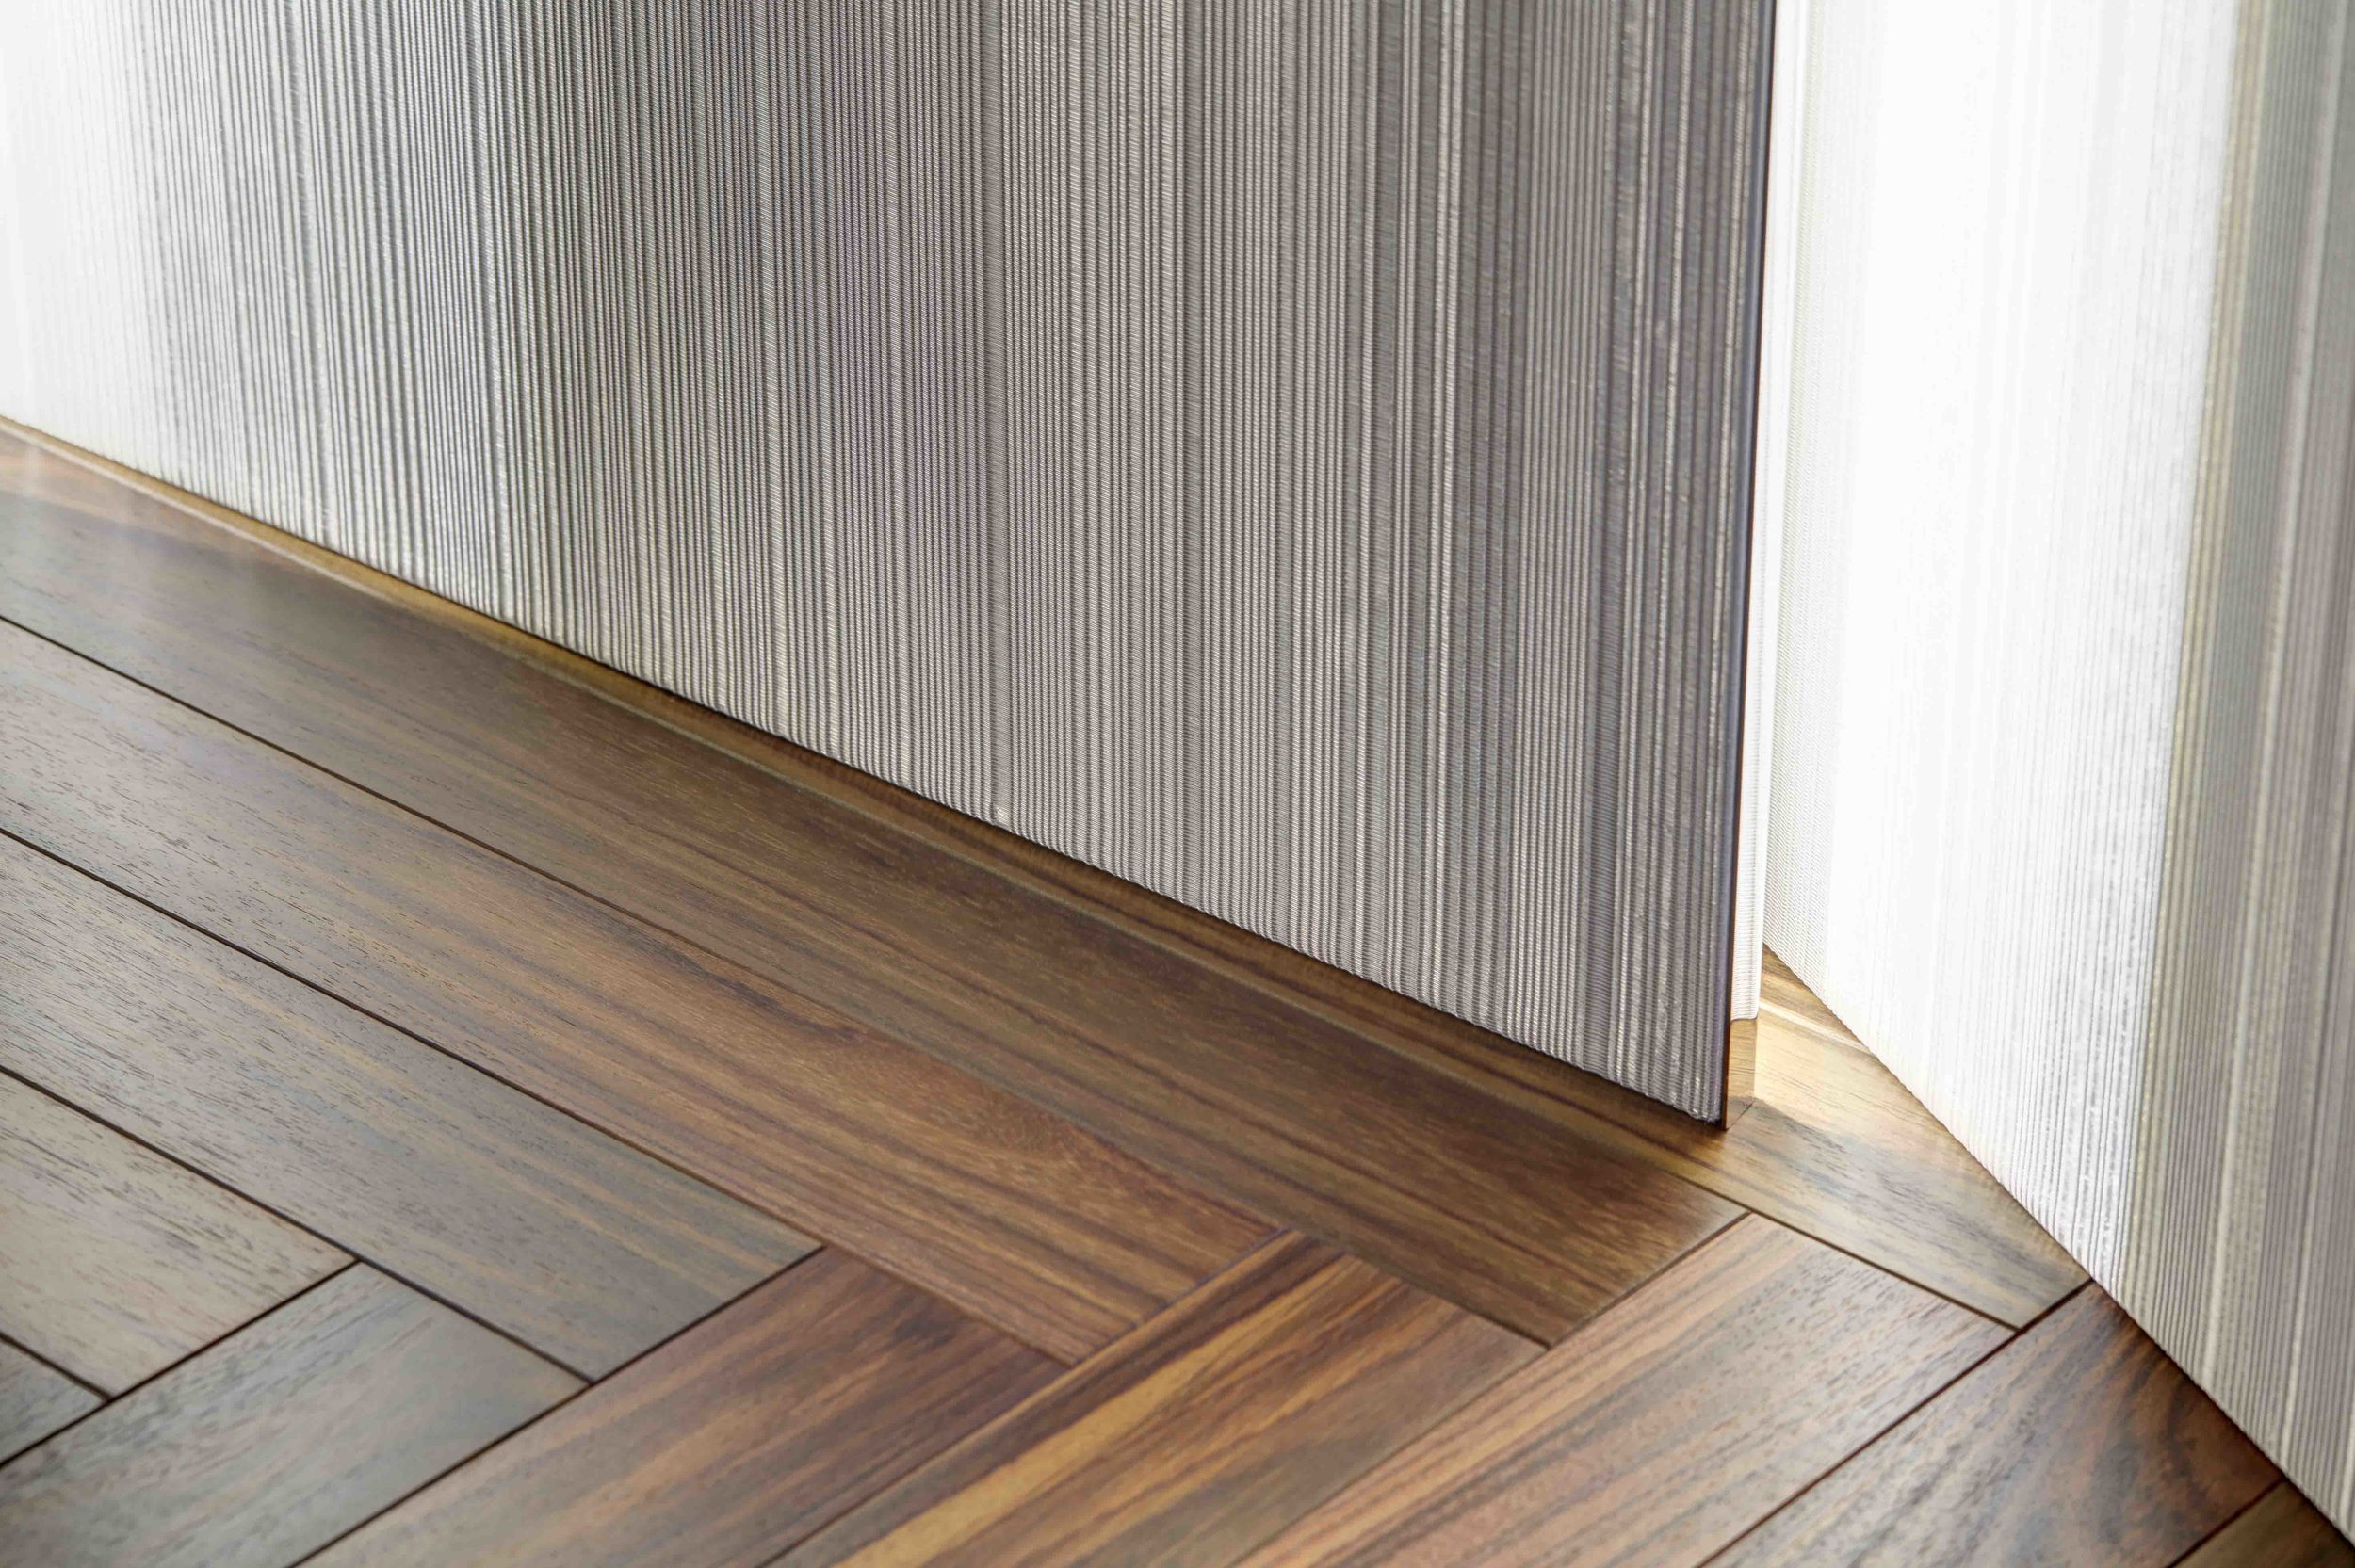 Sophie-Mallebranche-Woven-Metal-Wall-Covering